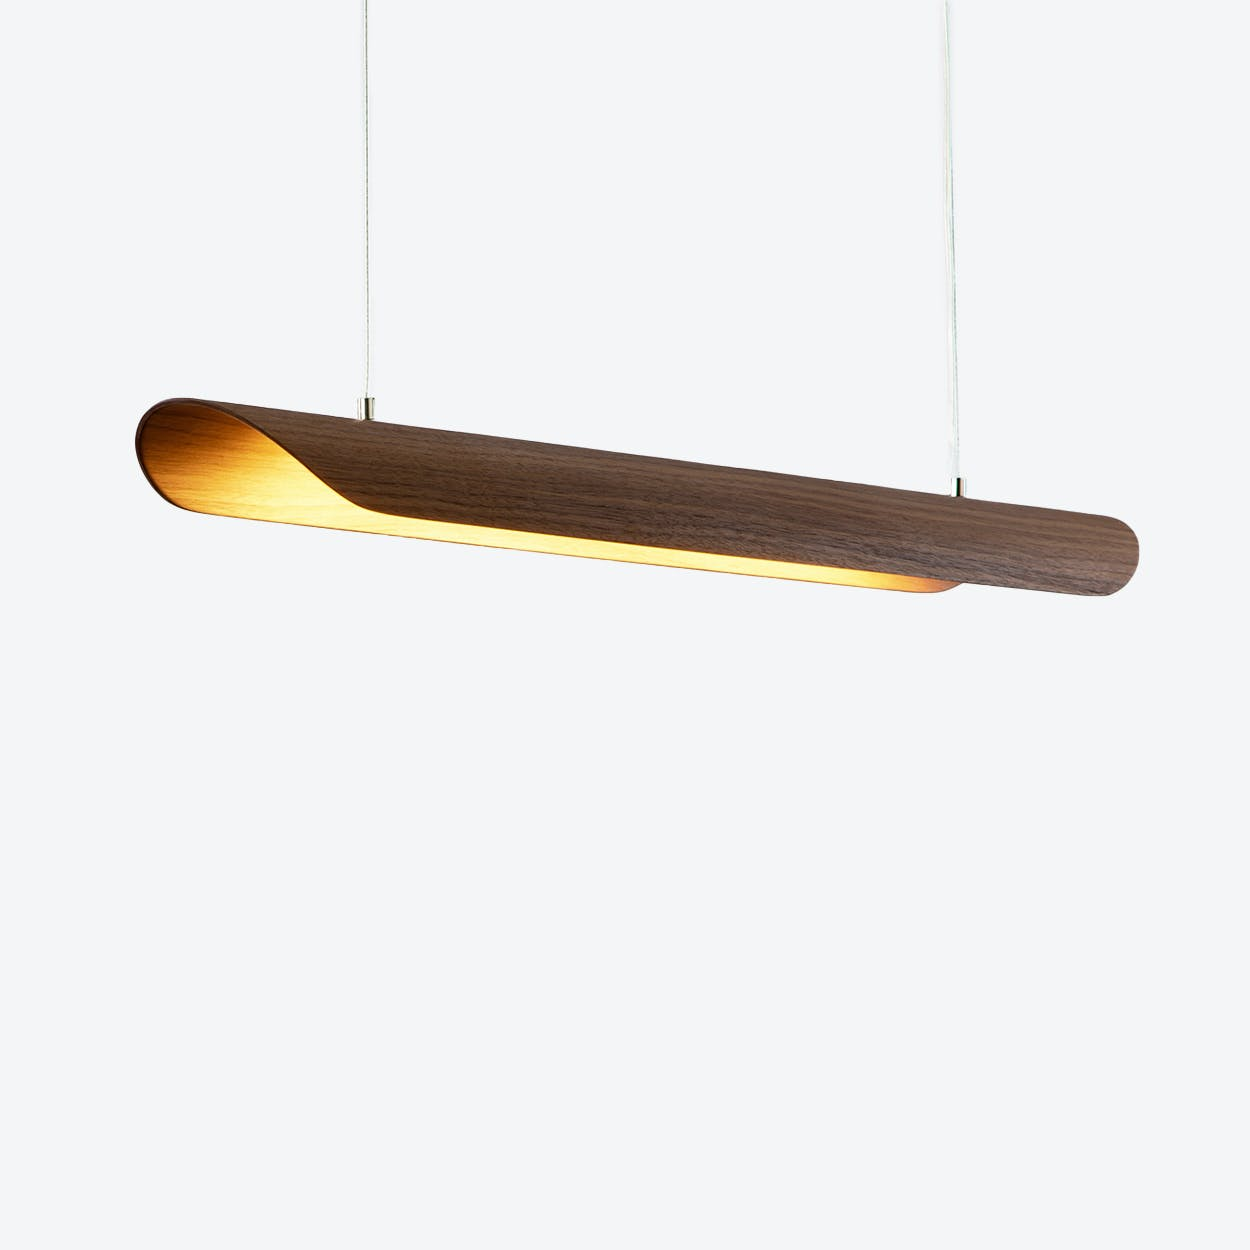 Canoe LED Light in Walnut Veneer (Transparent Cable)